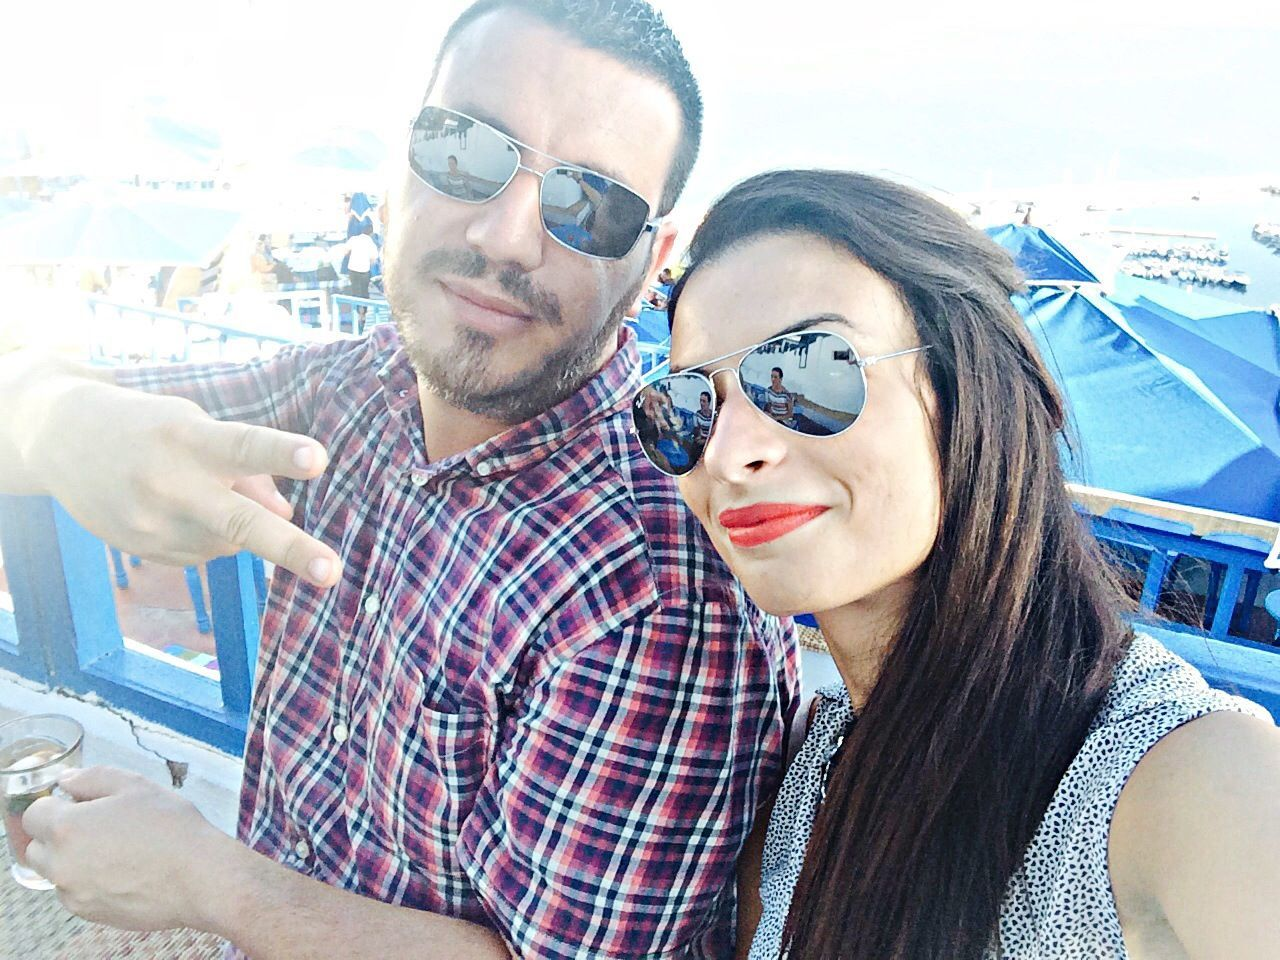 sunglasses, two people, selfie, togetherness, young men, young adult, young women, friendship, portrait, smiling, lifestyles, photographing, looking at camera, men, real people, day, sitting, happiness, outdoors, photography themes, women, close-up, adult, people